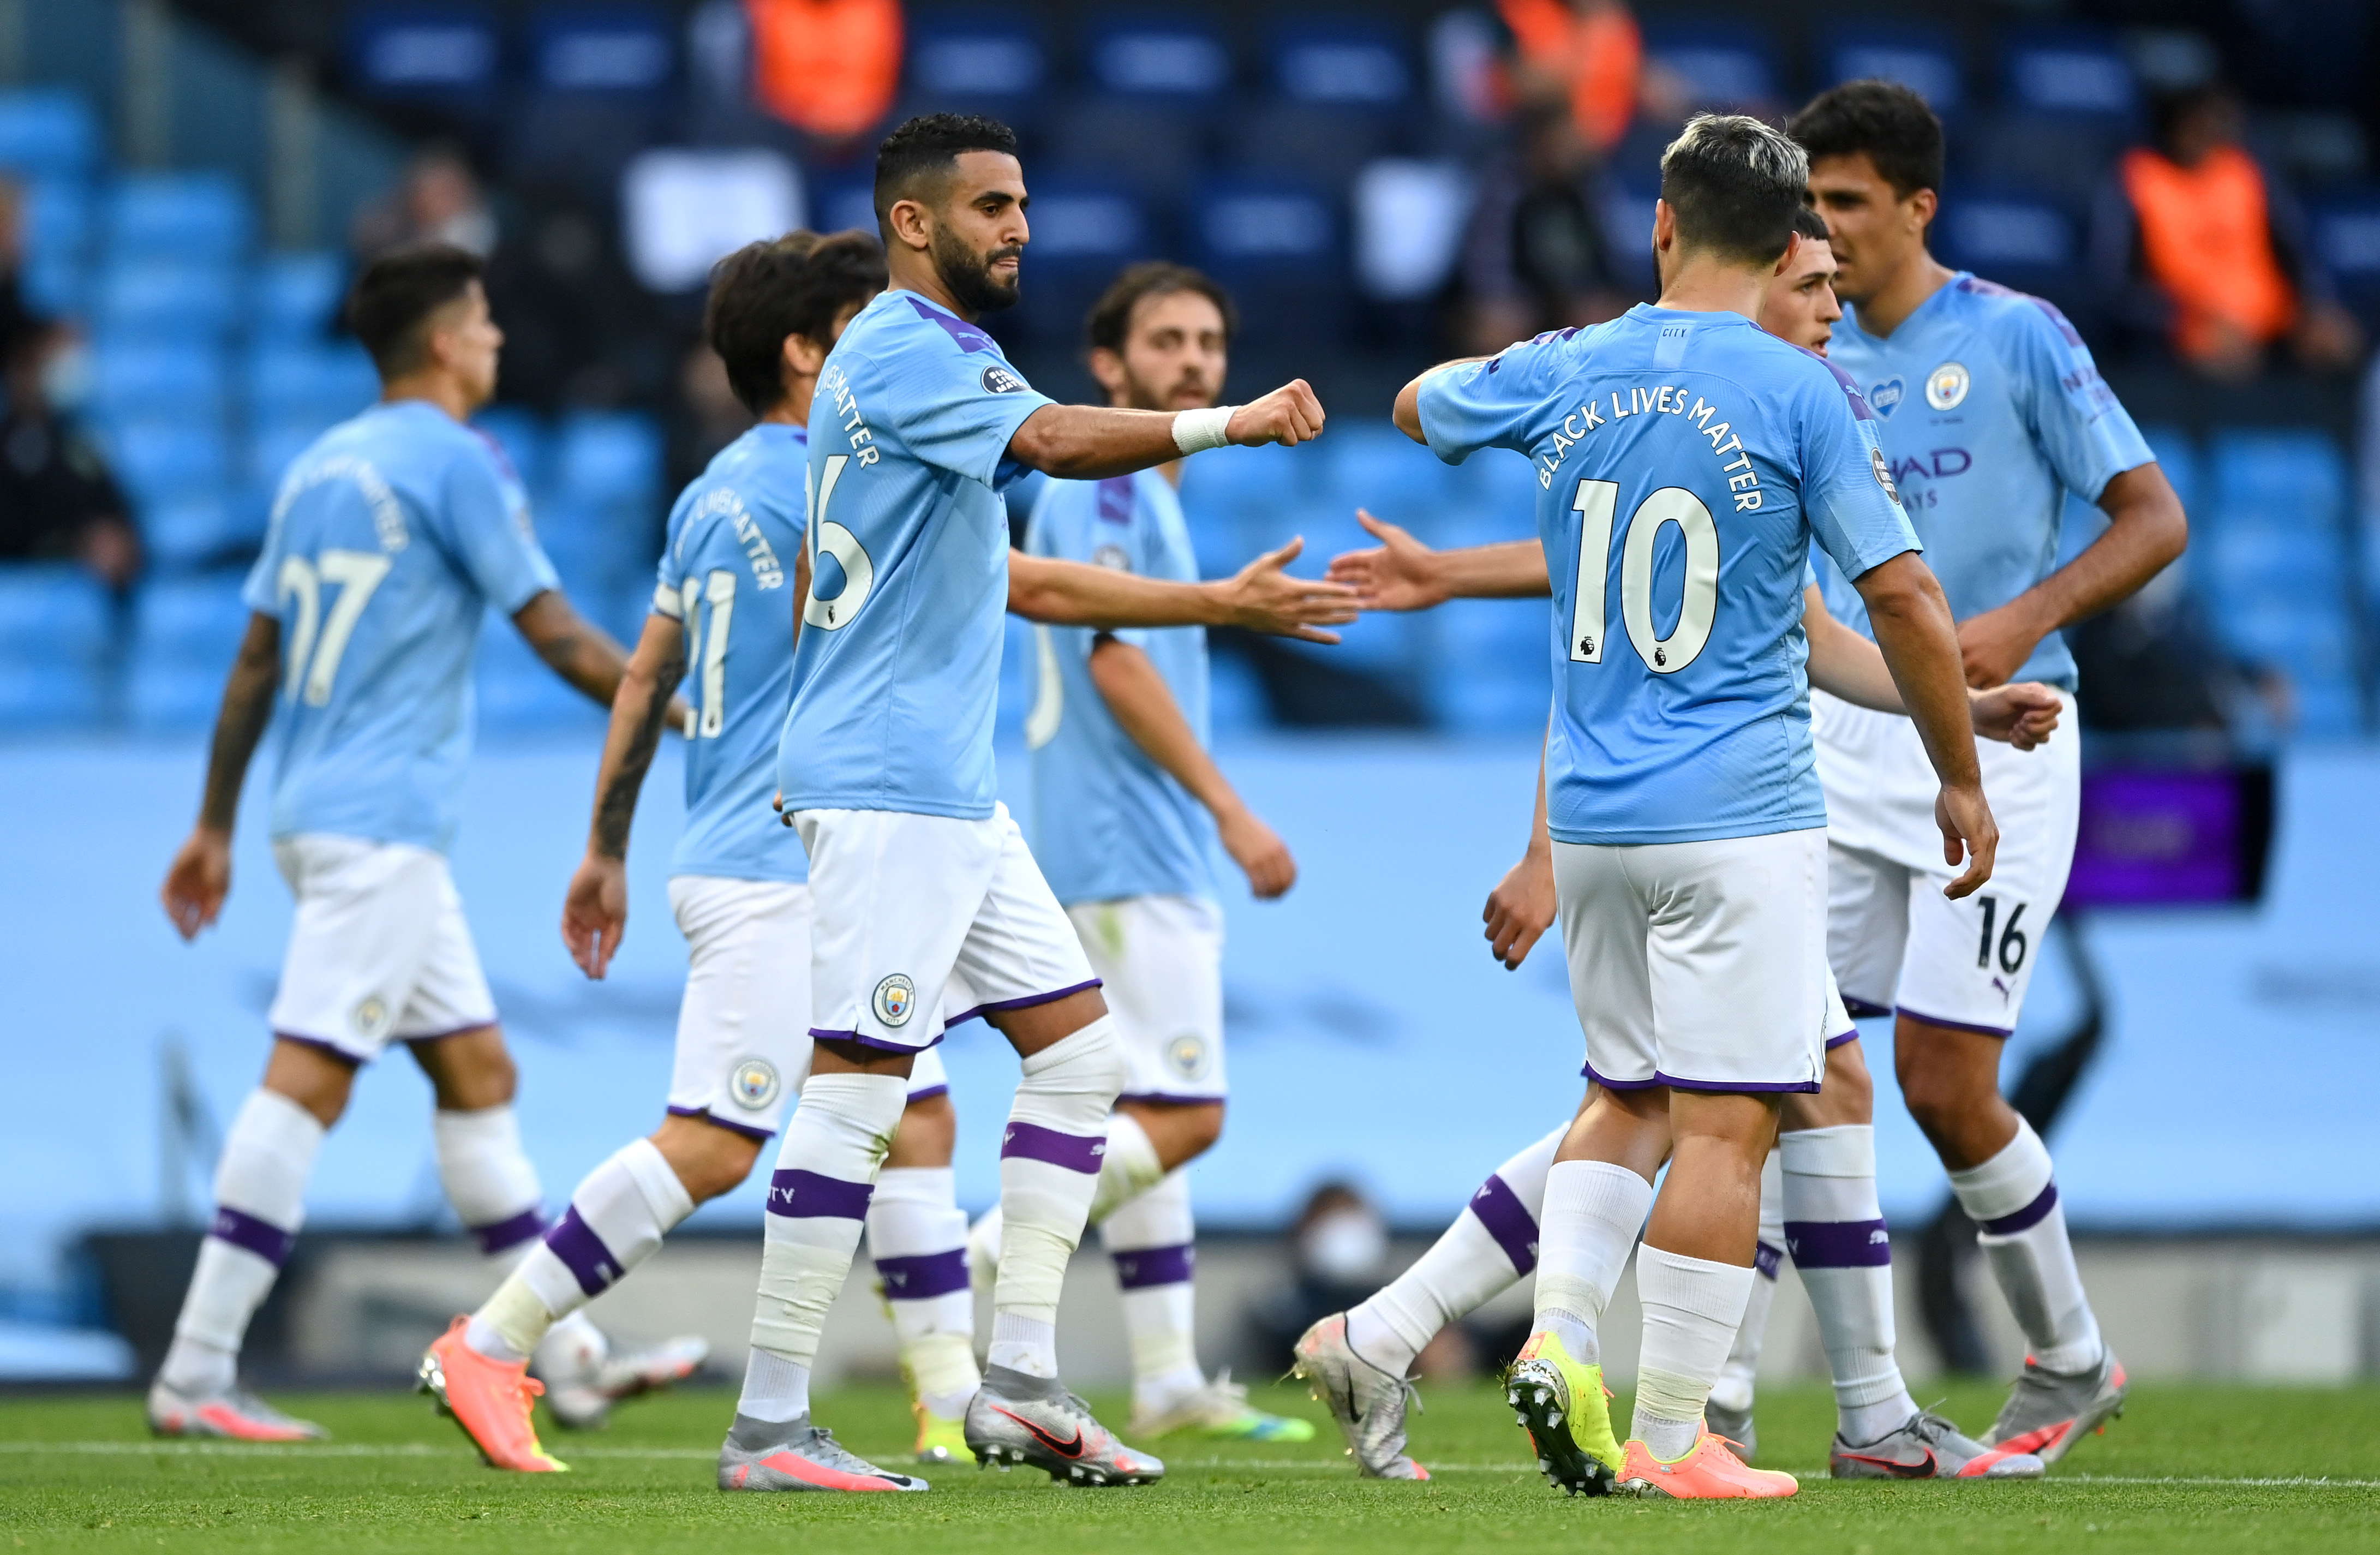 Tactical decisions Manchester City should make to win vs Liverpool (Man City players seen in the photo)